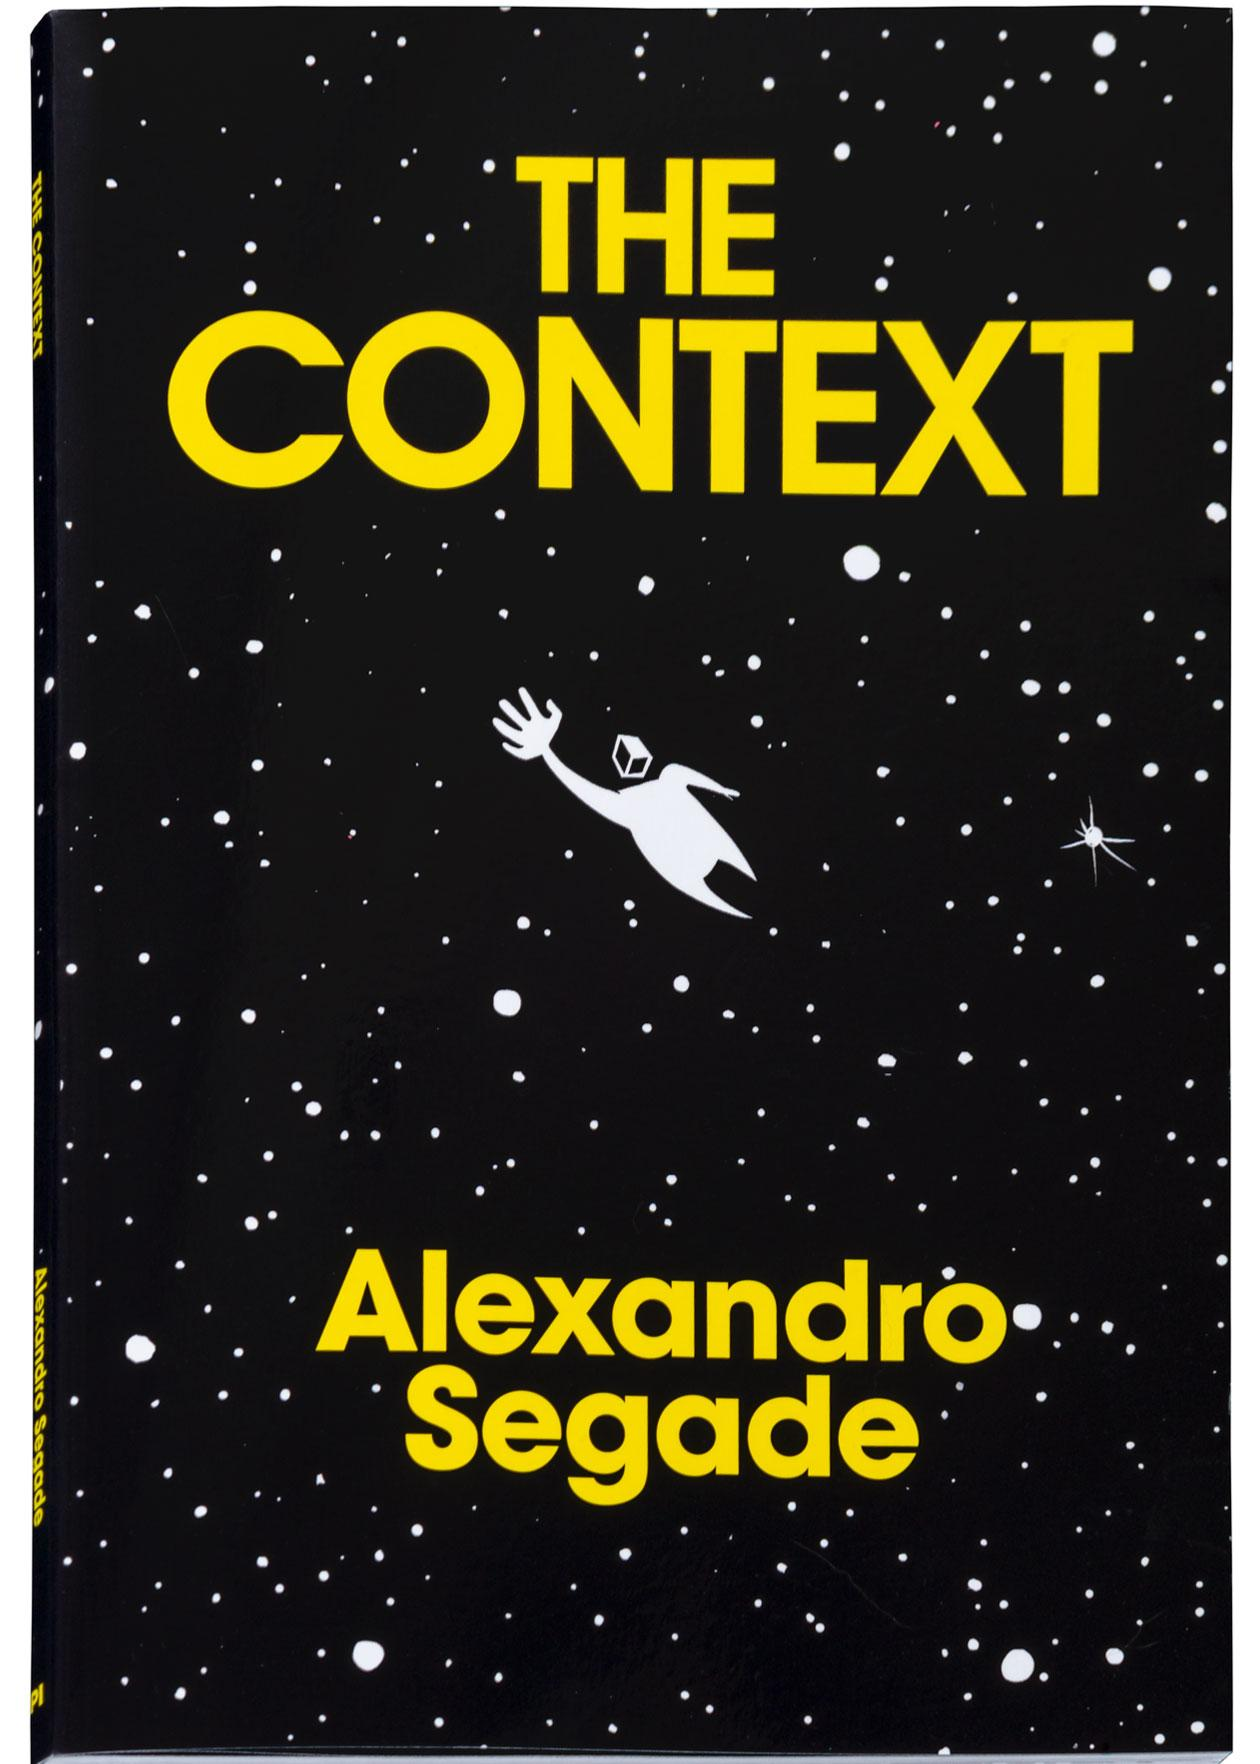 Alexandro Segade, The Context, book cover, 2020